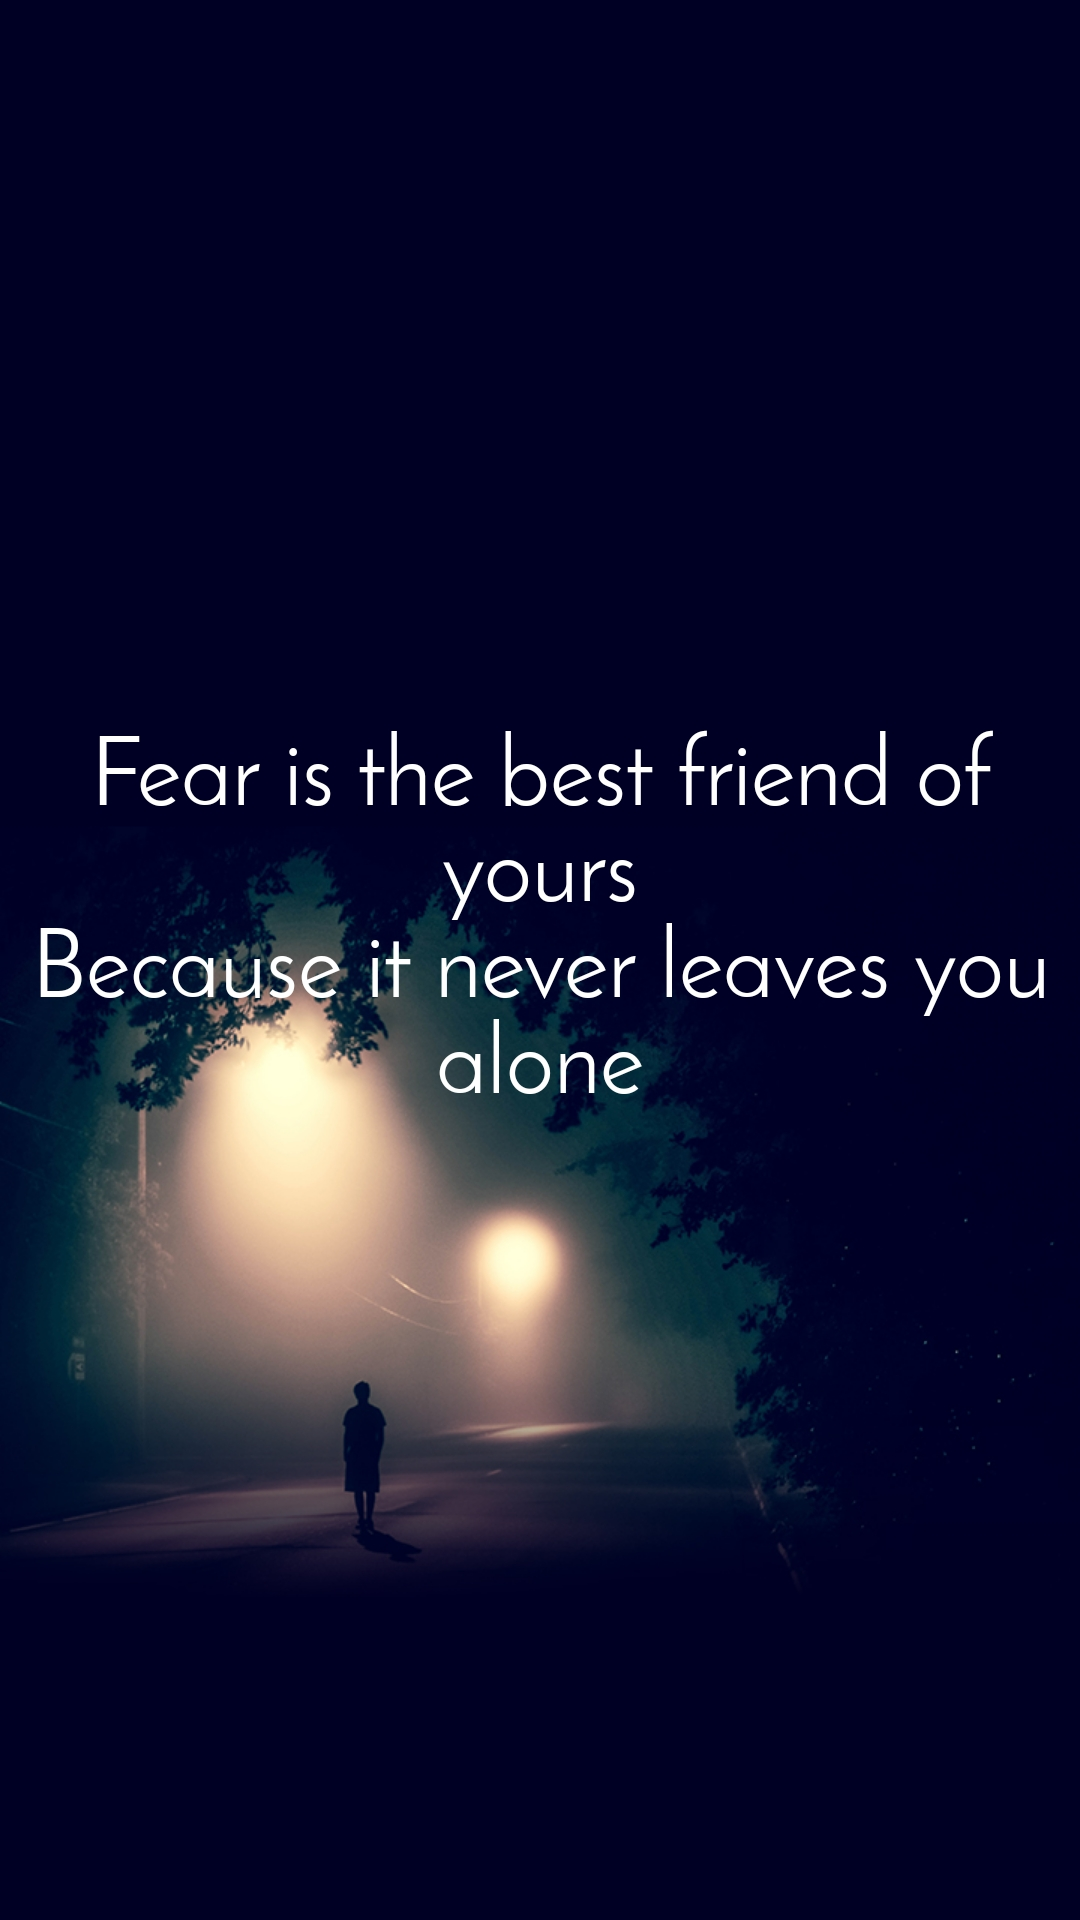 Fear is the best friend of yours Because it never leaves you alone